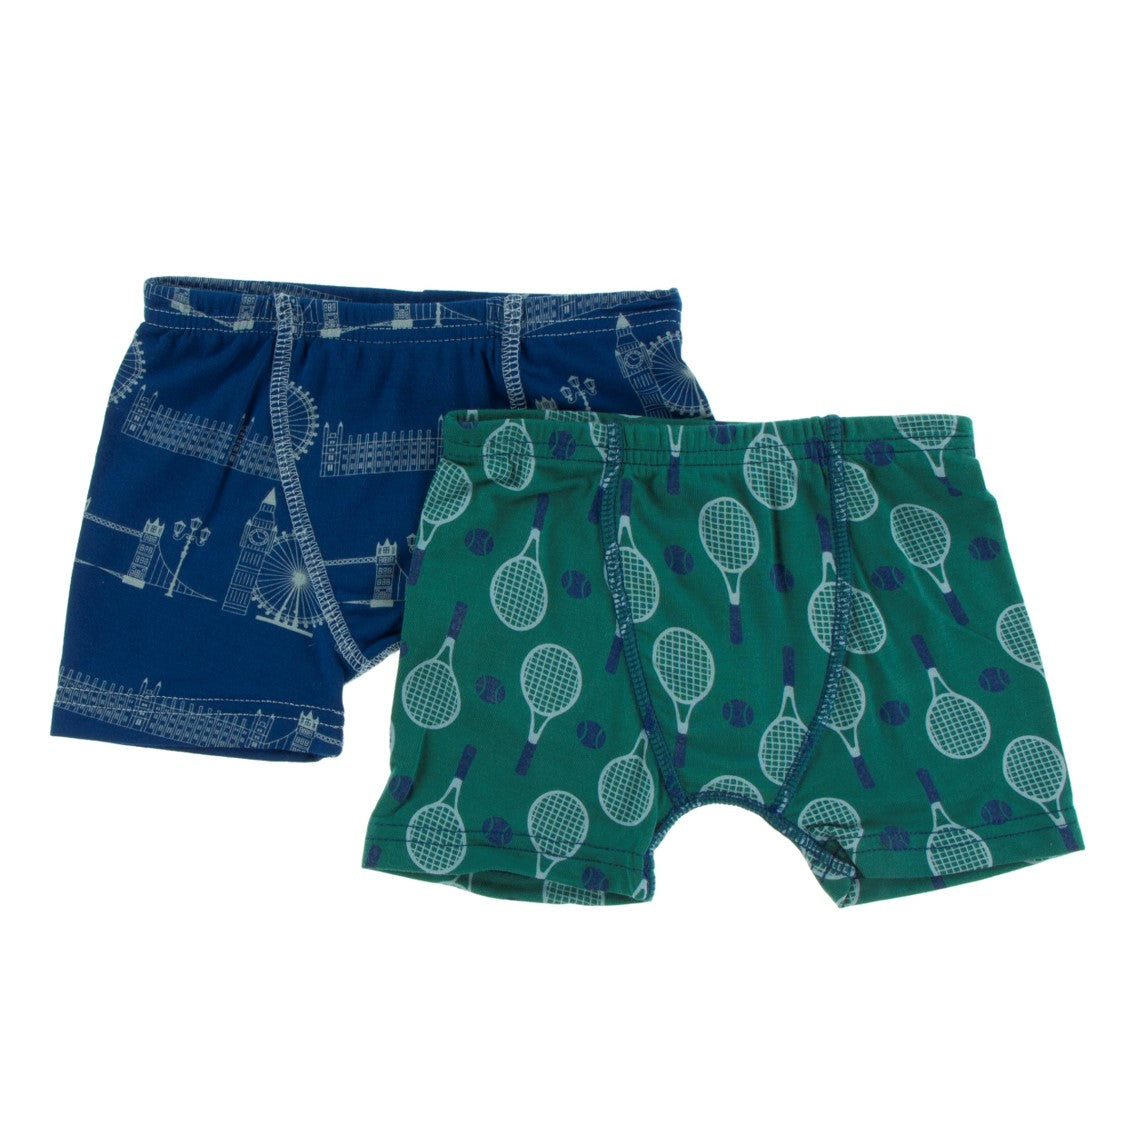 Kickee Pants - Fall 2 2018  - Boxer Brief Set - London Cityscape & Ivy Tennis